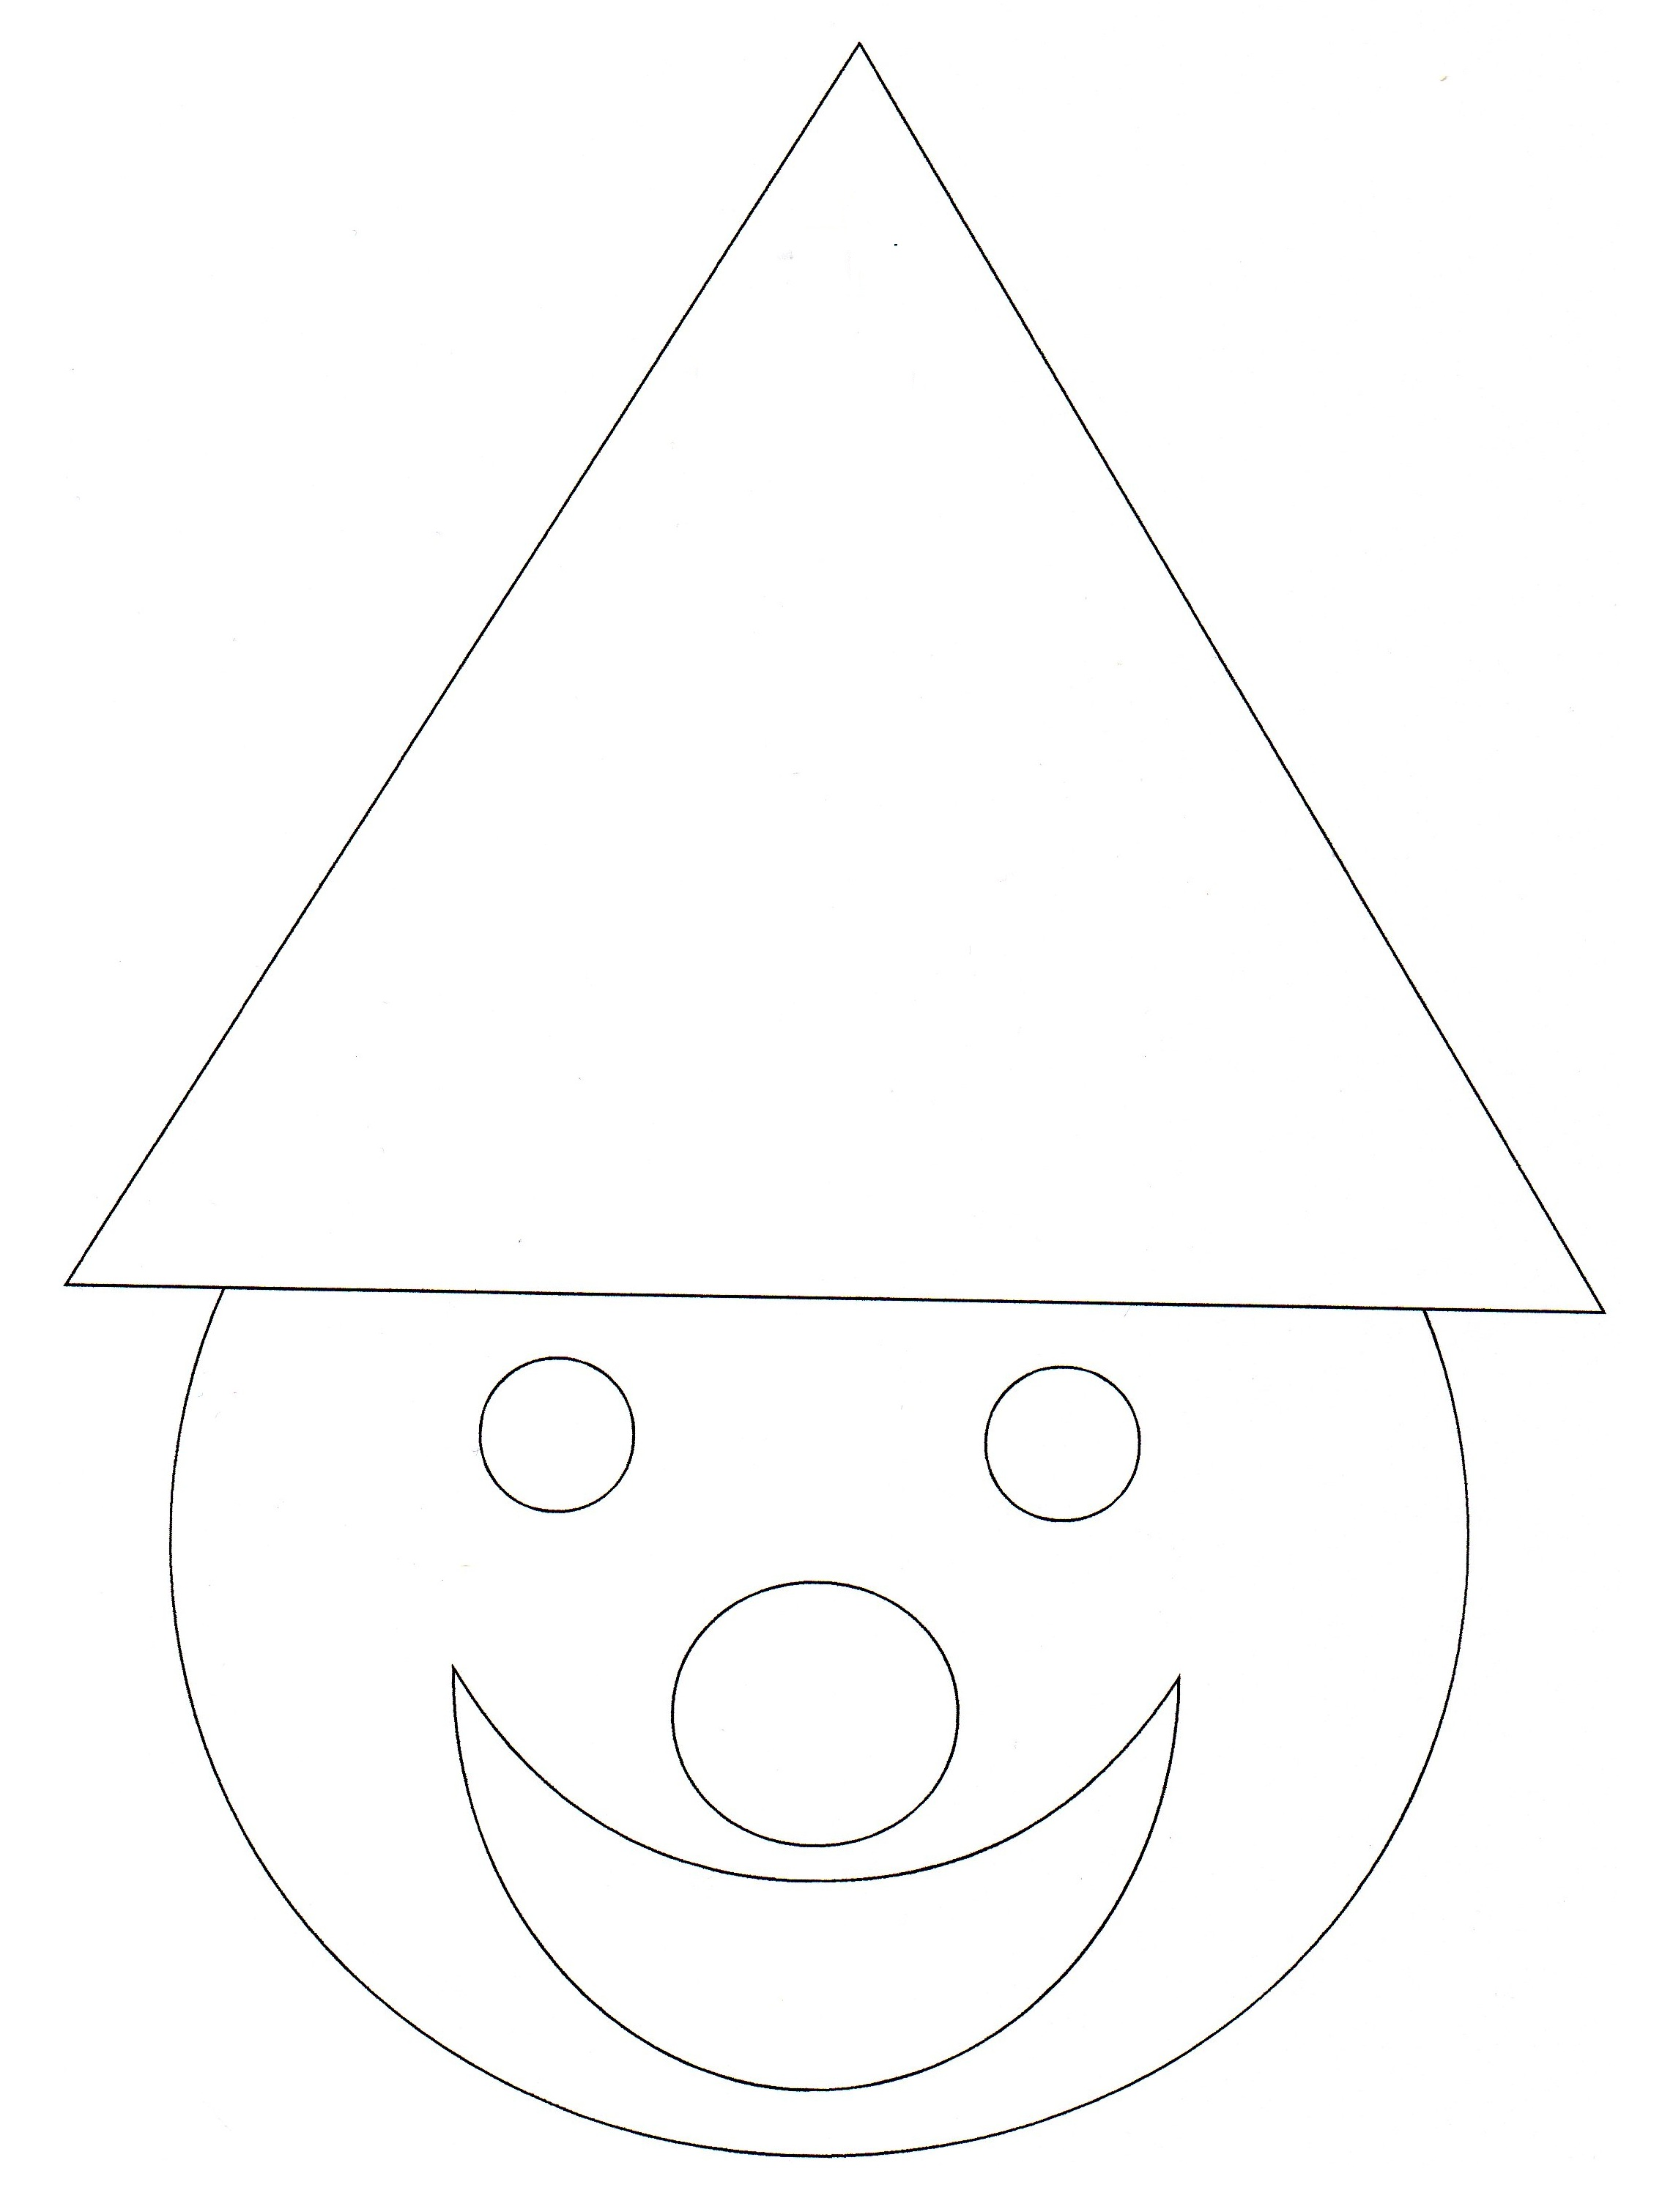 Simple geometric shapes coloring page : cute character created with some forms : triangle, circles ...